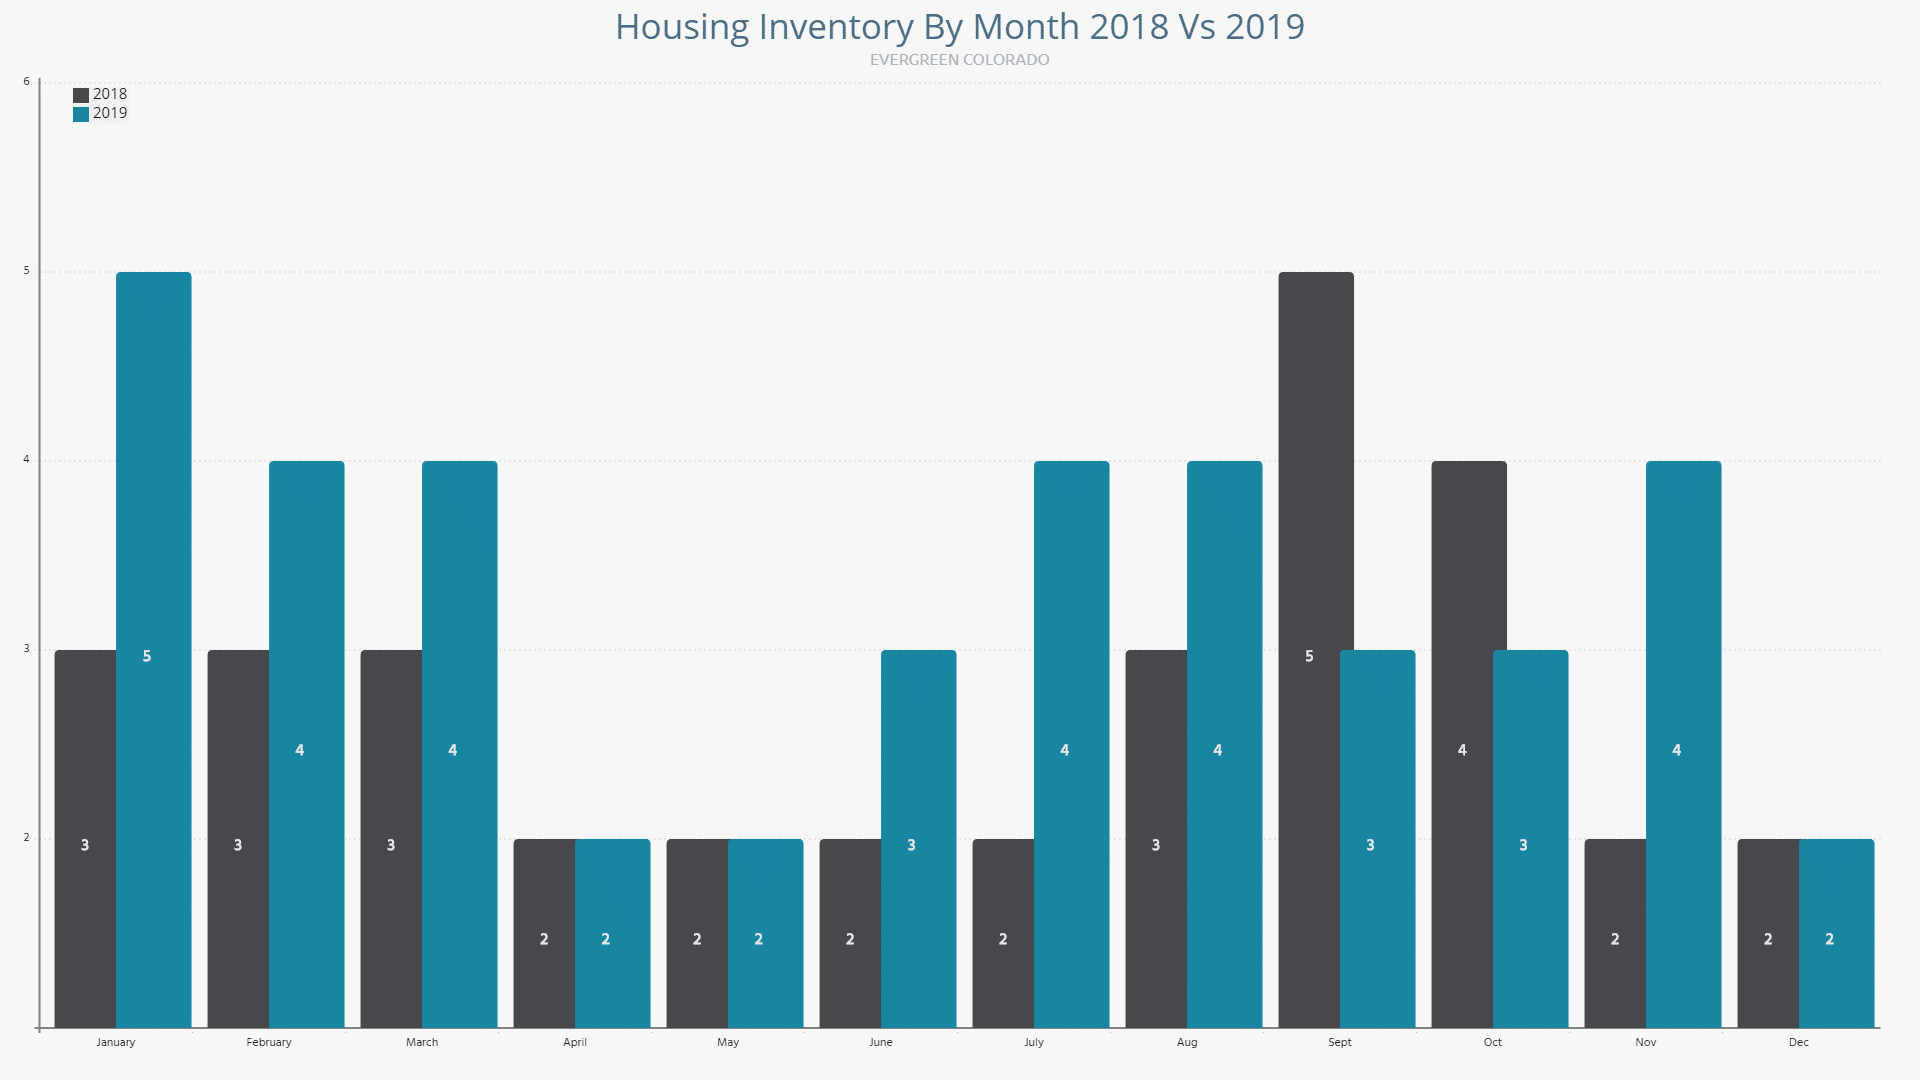 Evergreen Co Housing Inventory for 2018 vs 2019